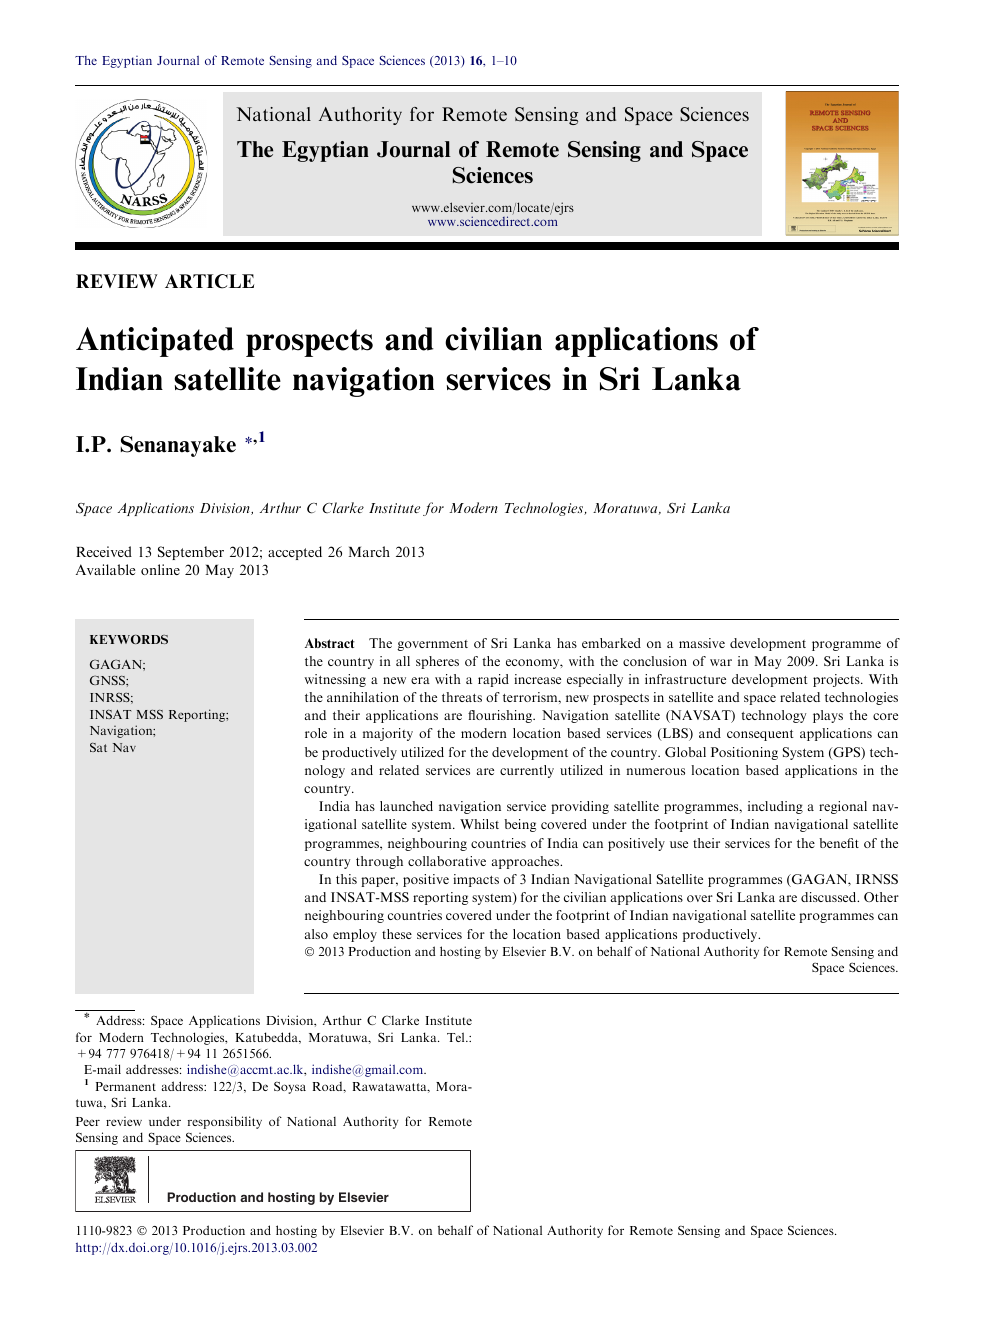 Anticipated prospects and civilian applications of Indian